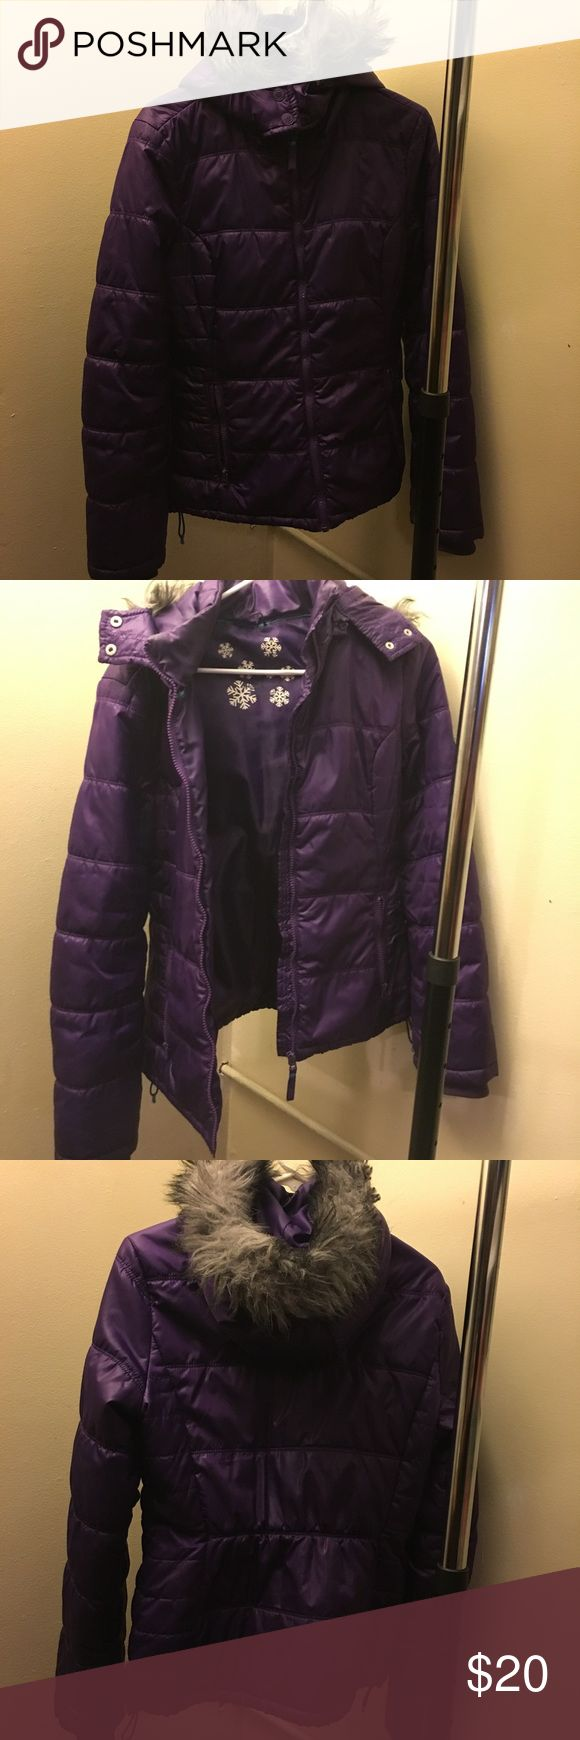 purple winter puffer jacket purple winter puffer jacket with grey fur hood gently used condition just don't use anymore juniors large aeropostale Aeropostale Jackets & Coats Puffers